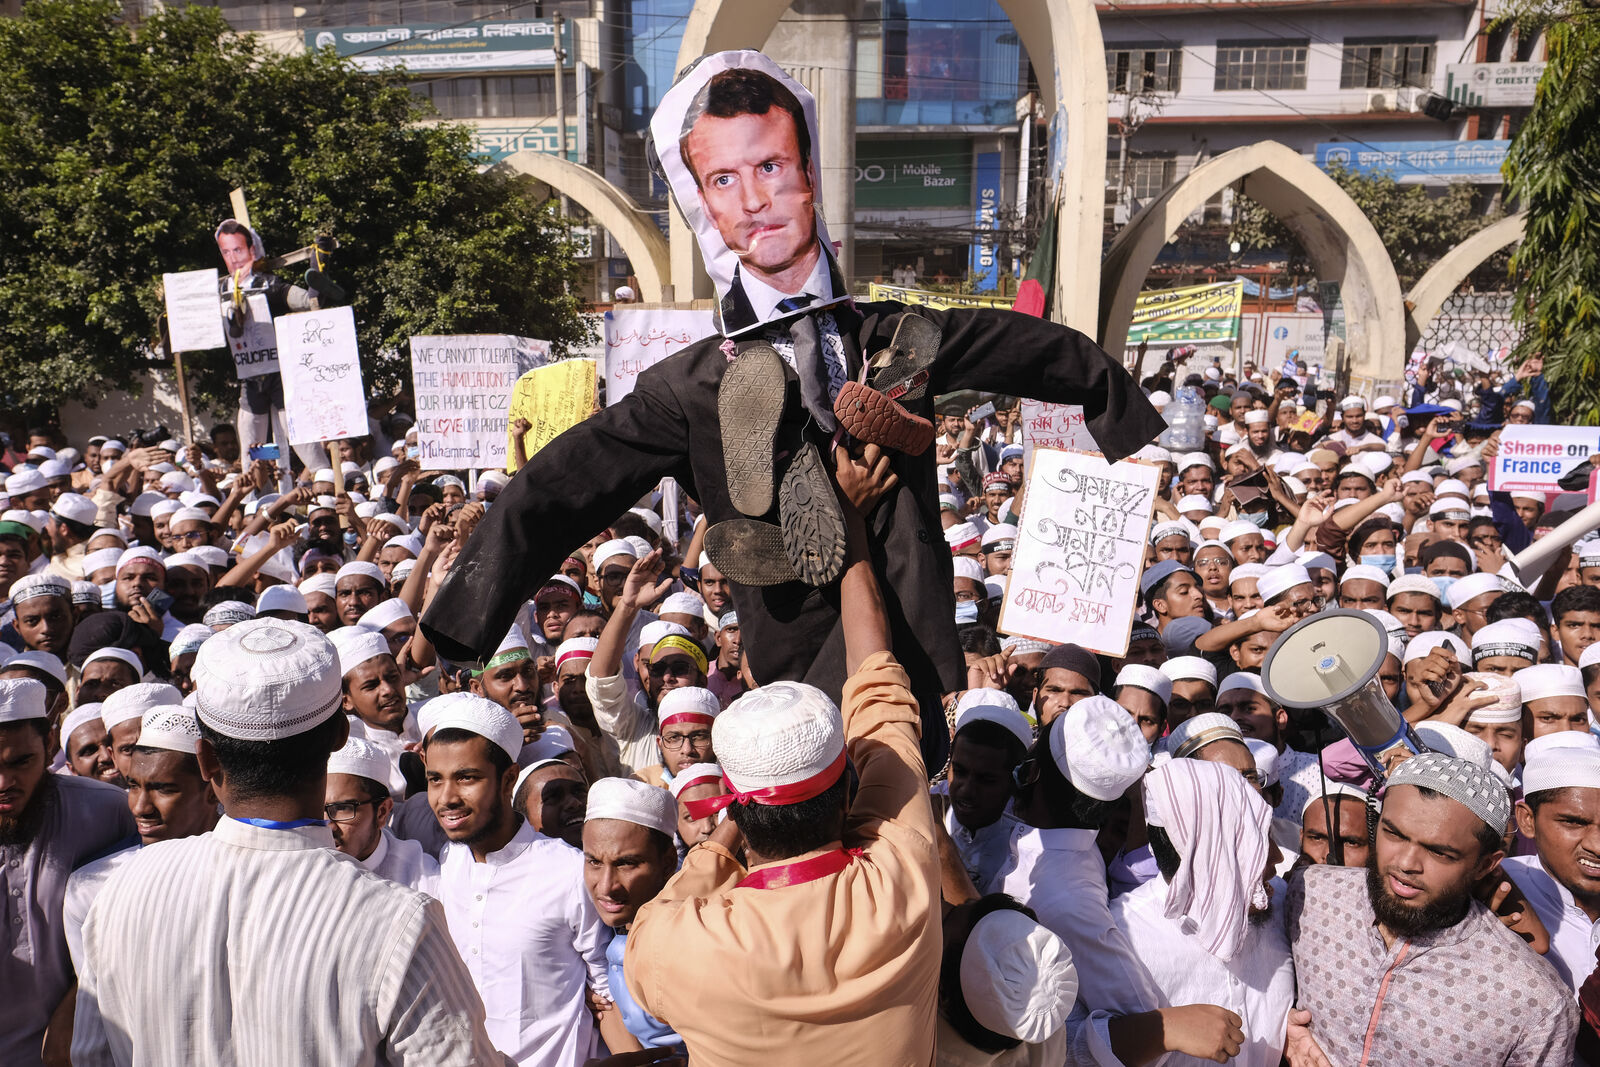 Supporters of Islamist parties carry an effigy of French President Emmanuel Macron during a protest after Friday prayers in Dhaka, Bangladesh, Friday, Oct. 30, 2020.(AP Photo/Mahmud Hossain Opu)